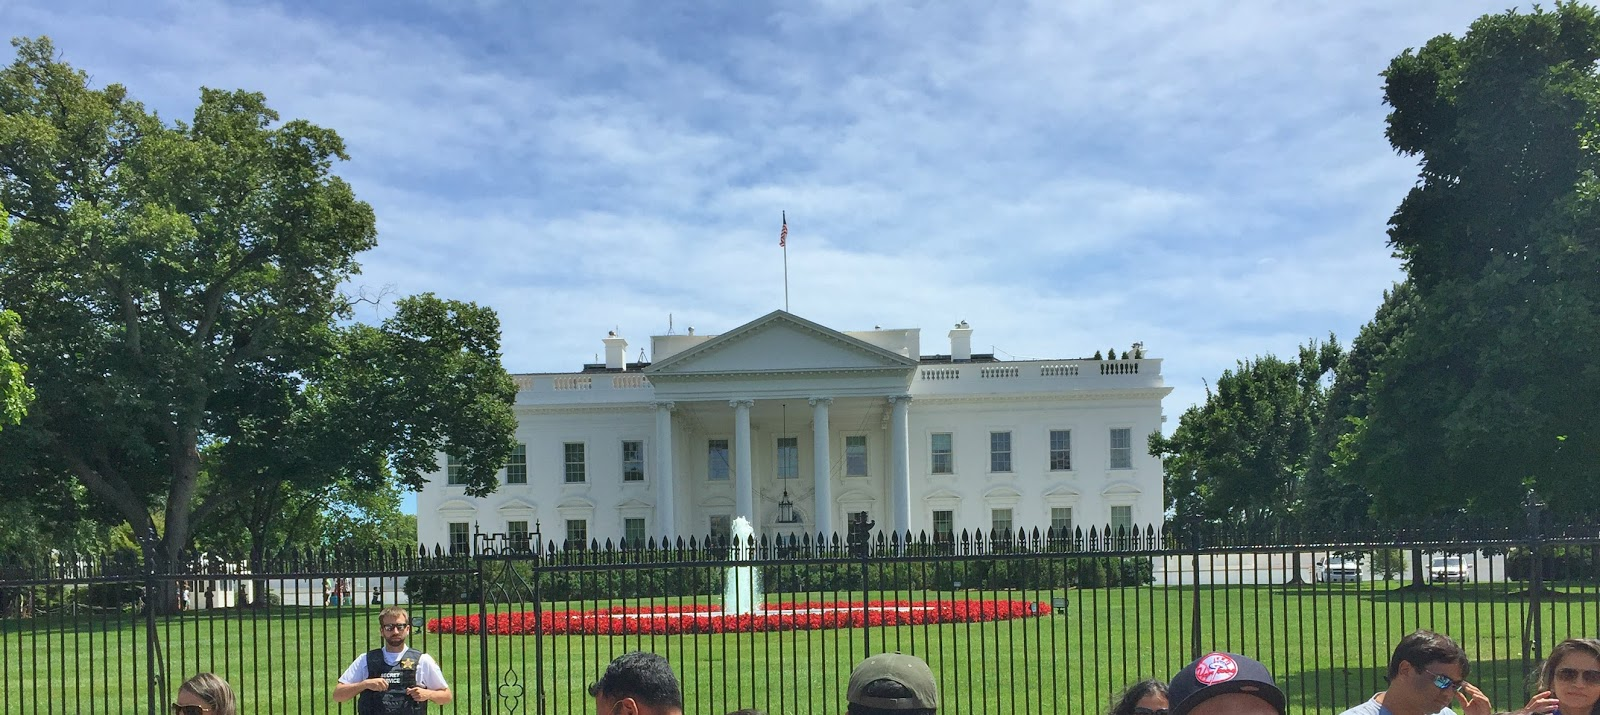 Why Was My White House Tour Denied